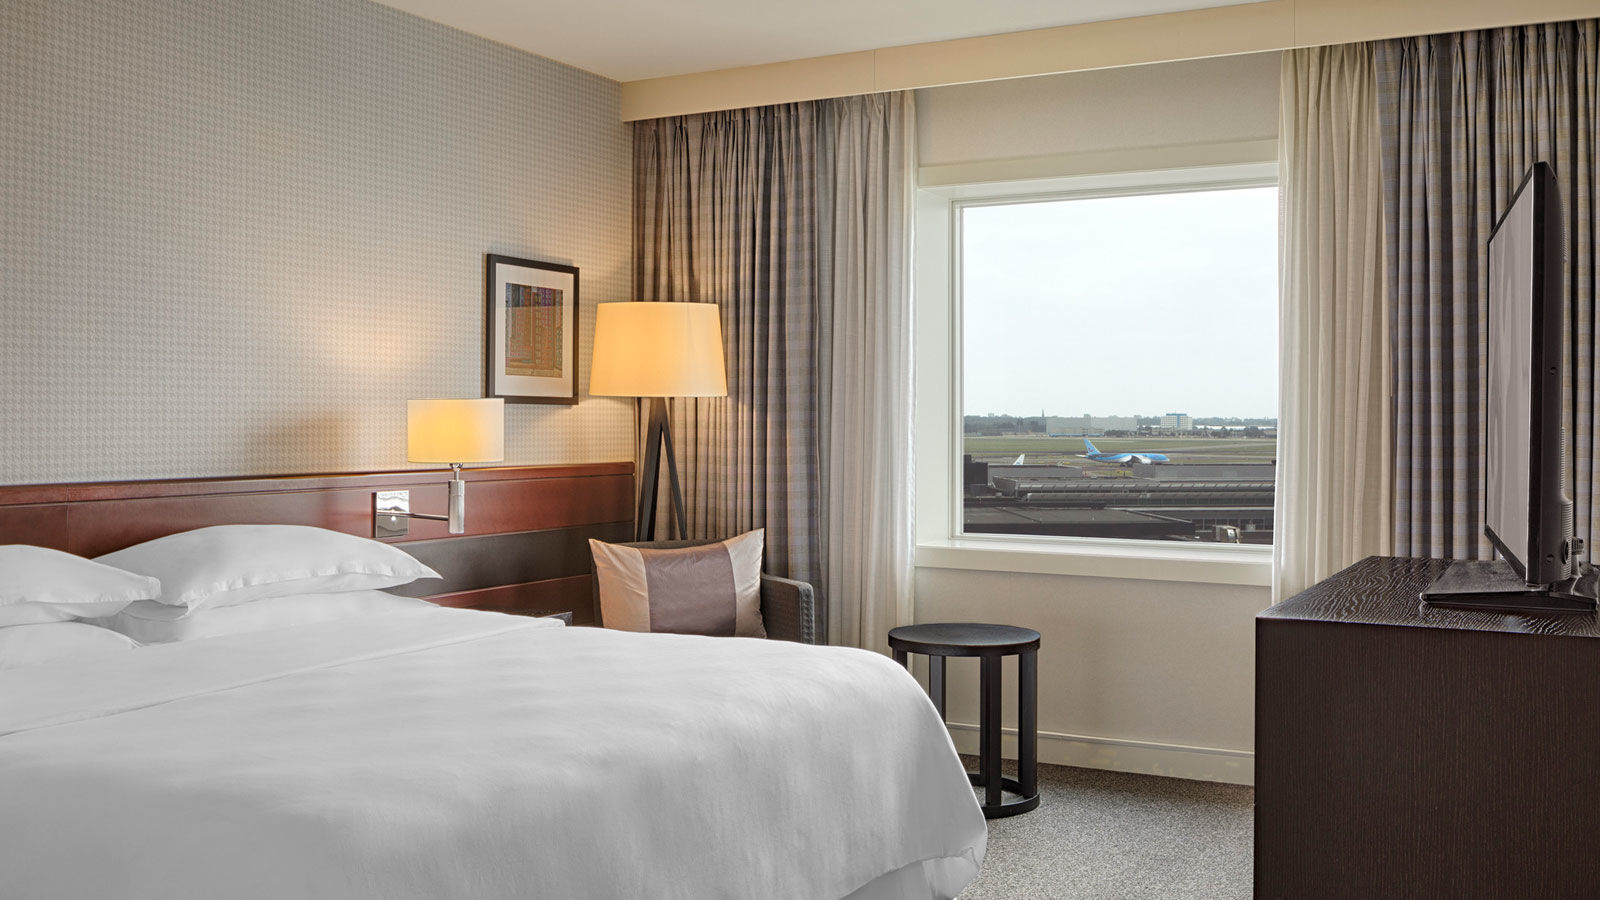 Reserve a room for a day at Sheraton Amsterdam Airport